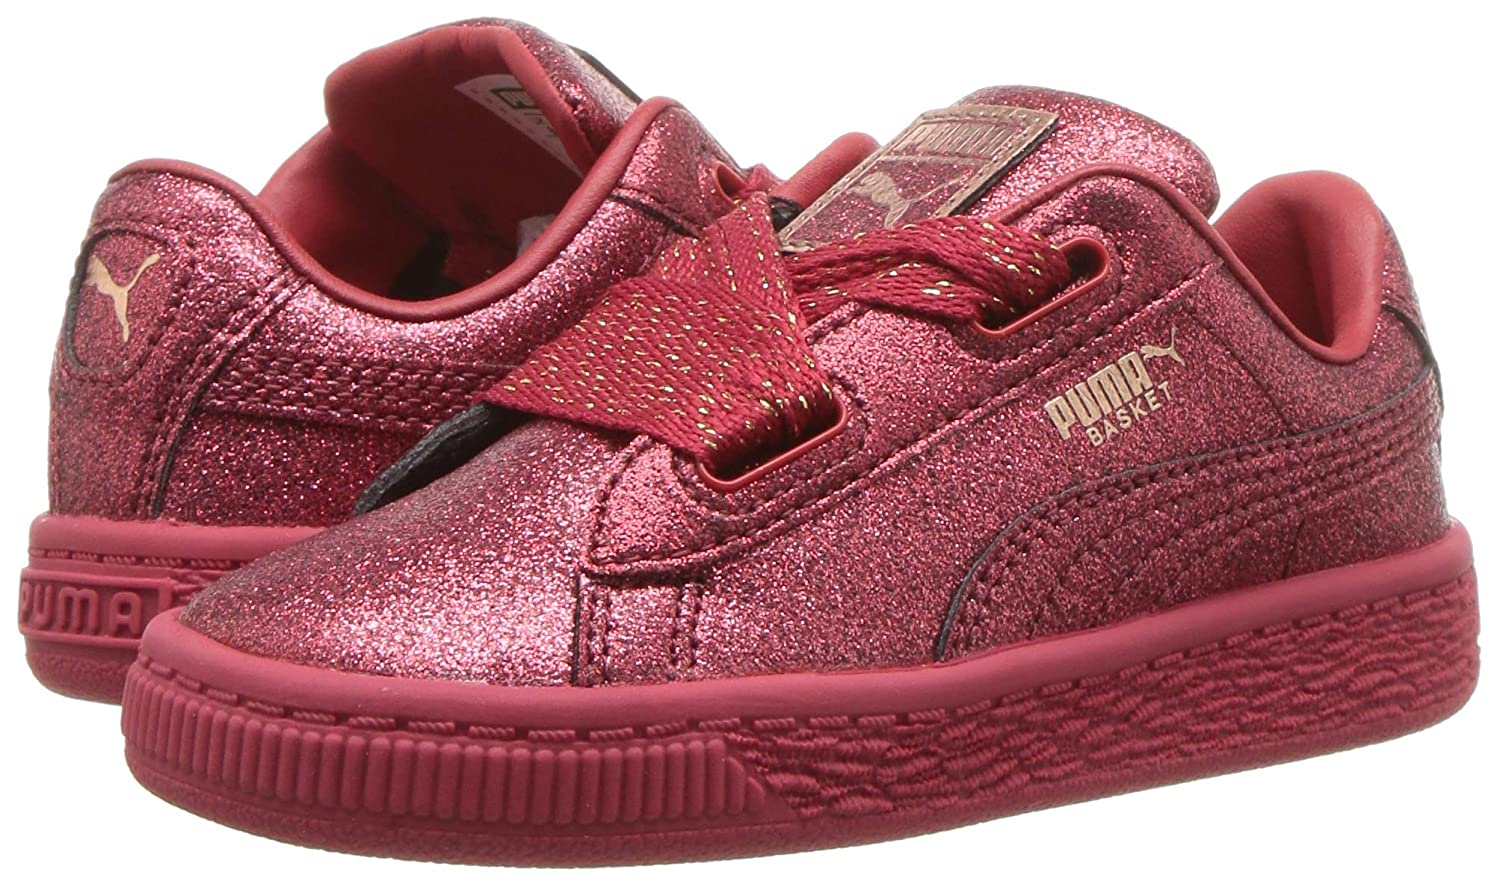 hot sales 59fc1 87dc2 Puma Basket Heart Patent Kids Sneaker: Buy Online at Low ...